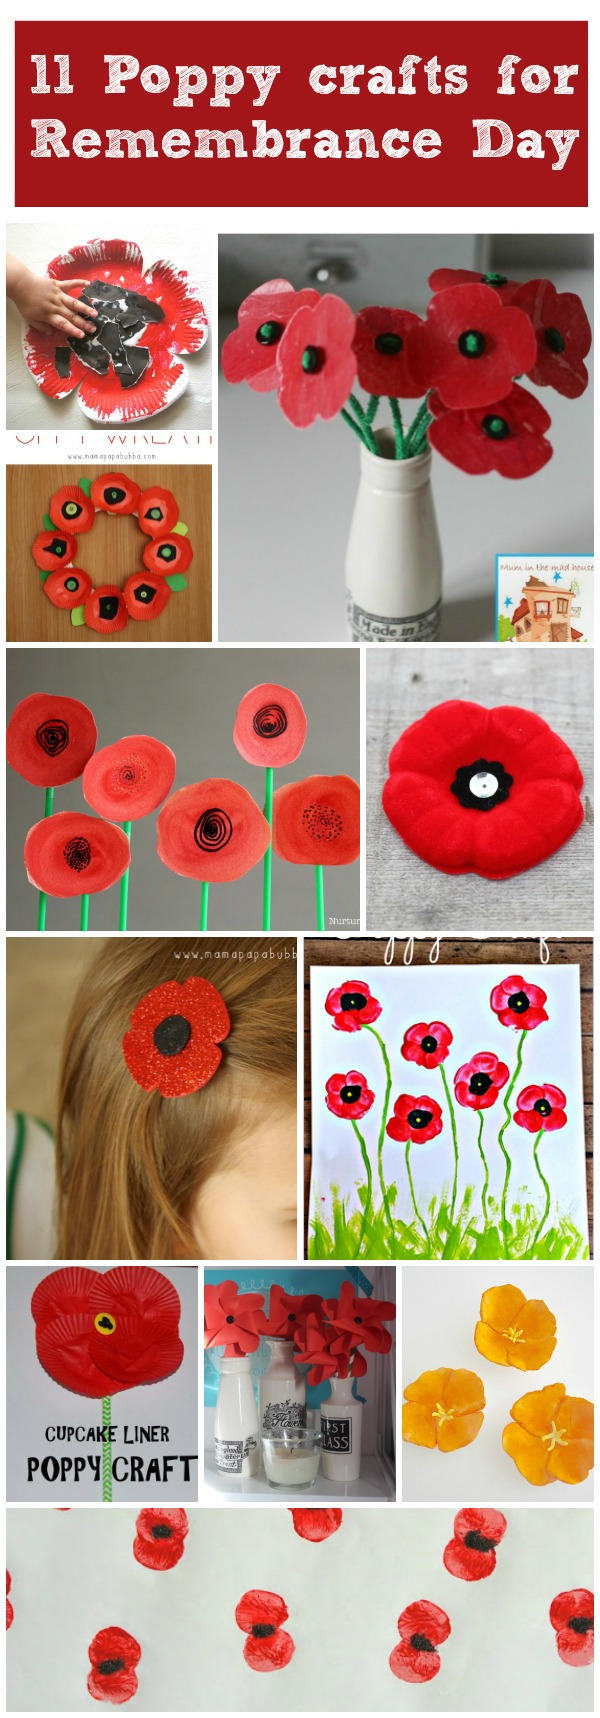 11 More Poppy Crafts For Remembrance Day Mum In The Madhouse